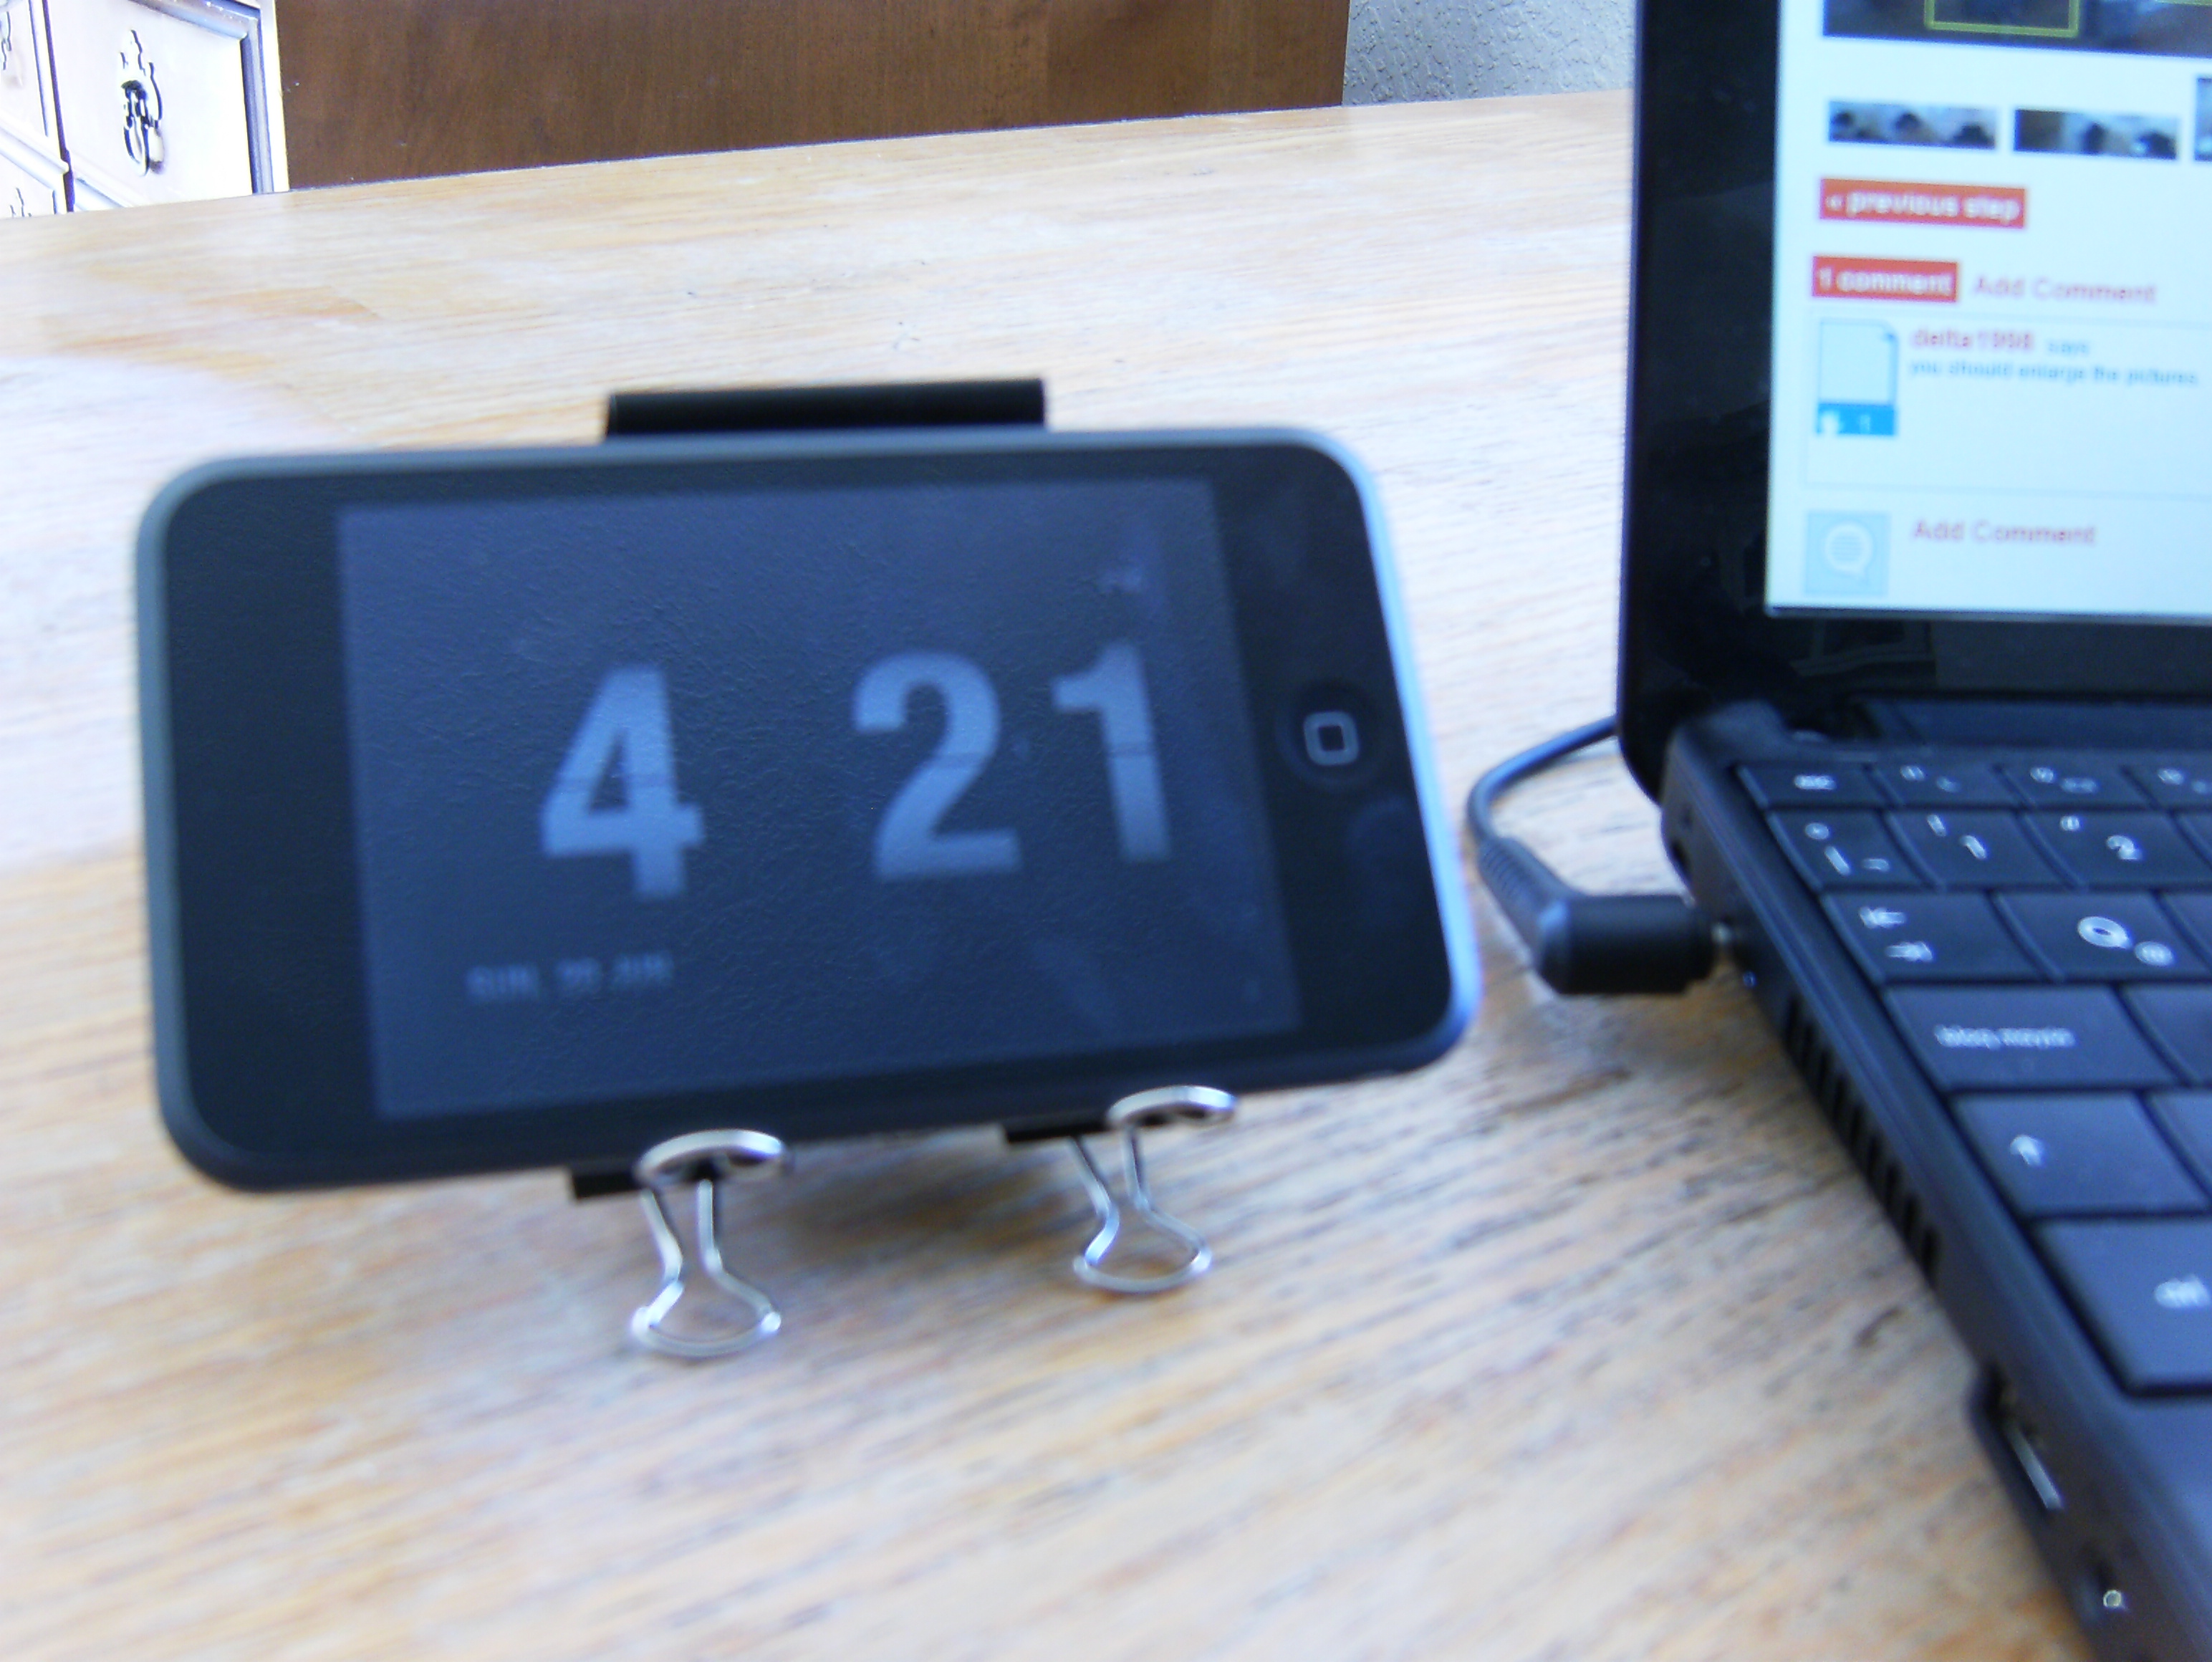 Binder clip dock stand for Ipod/Iphone or Cellphone (almost for any gadget)